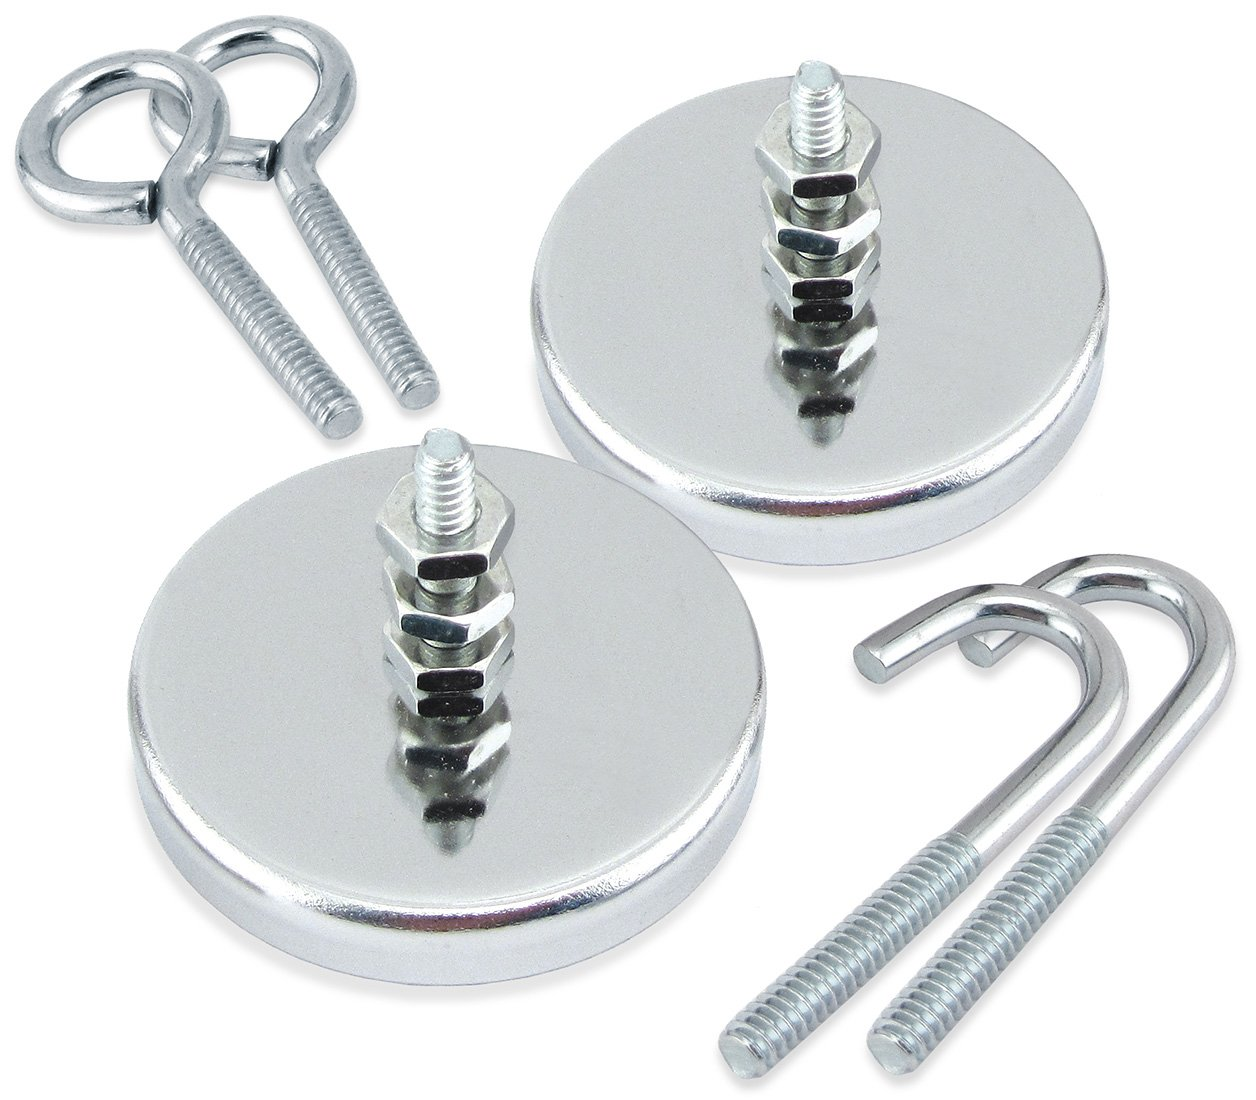 Master Magnetics RB50KITBX2 Ferrite/Low Carbon Steel Round Base Magnet Fastener with Bolt, Hook and Eyebolt, Chrome Plate, 2.04'' Diameter, 0.315'' Thick, 35 lb. (Pack of 2)